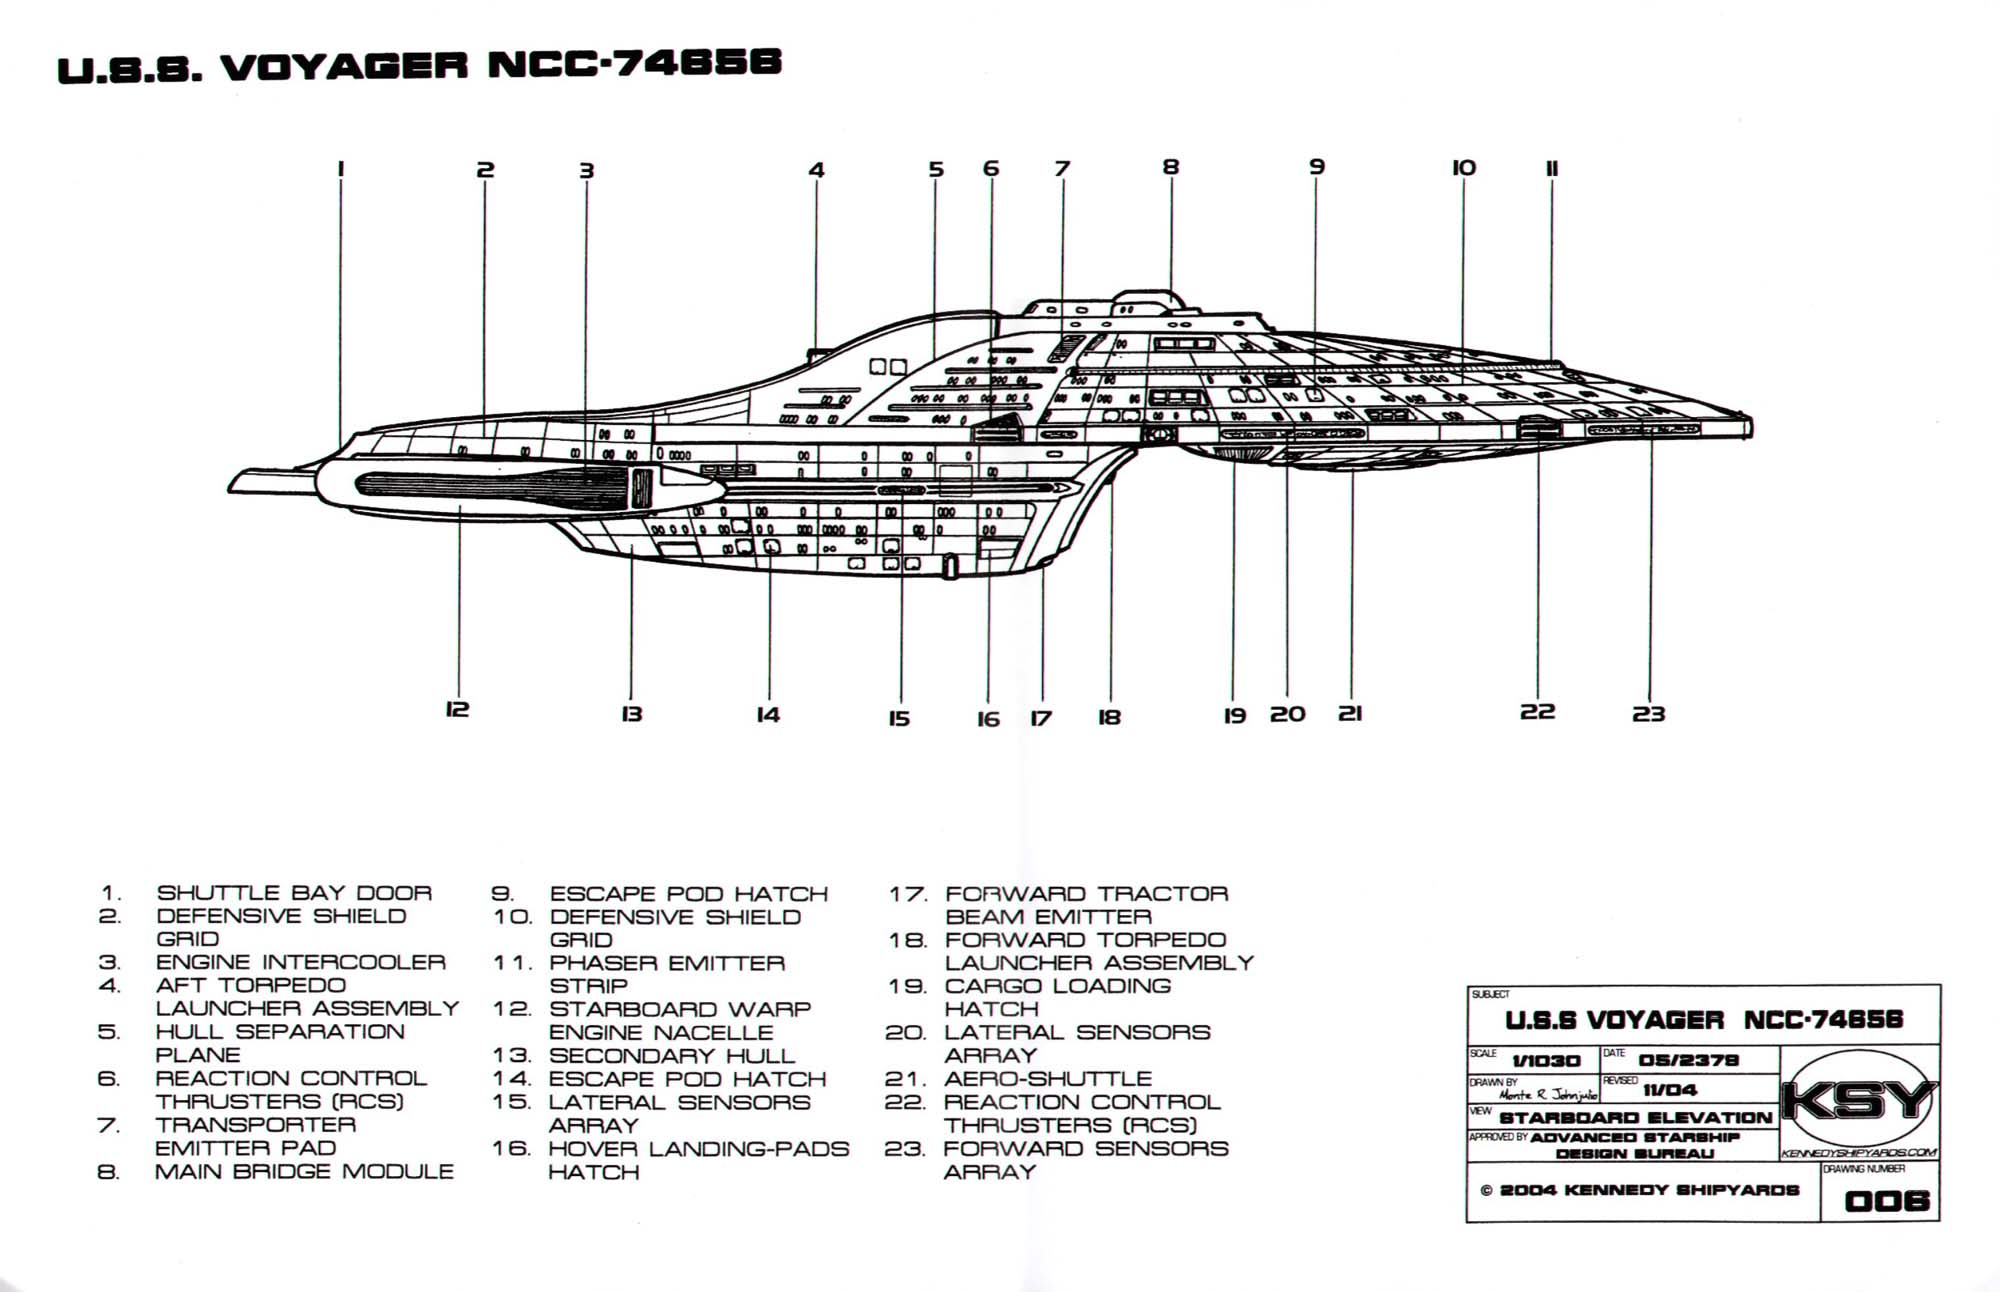 Star trek blueprints intrepid class starship uss voyager ncc 74656 intrepid class starship uss voyager ncc 74656 sciox Image collections